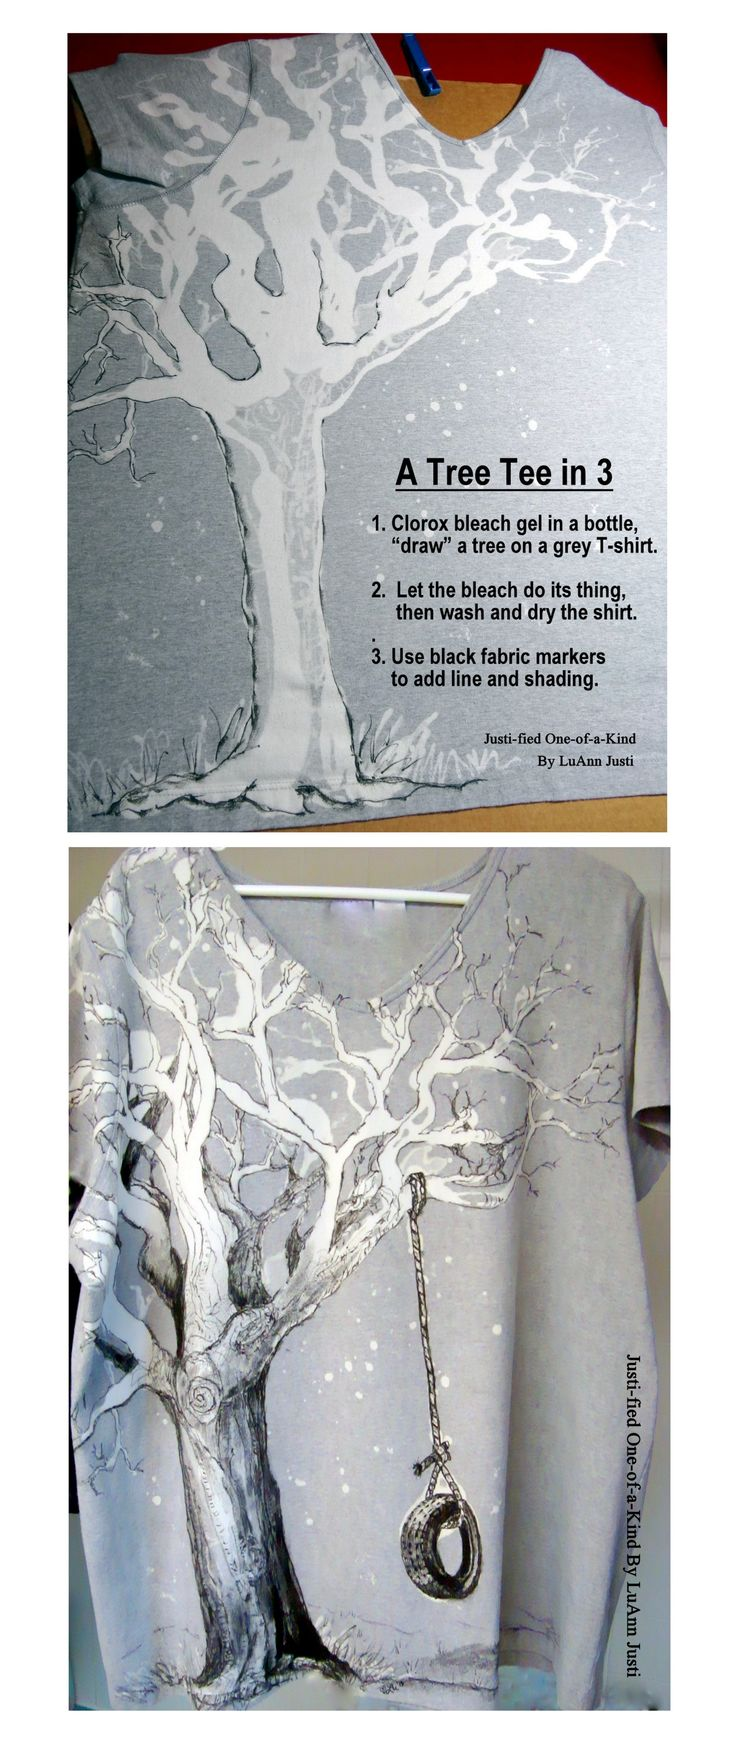 Bleach gel in a bottle (not a pen) creates a loose drawing, then tighten it up with fabric markers for a fun technique.